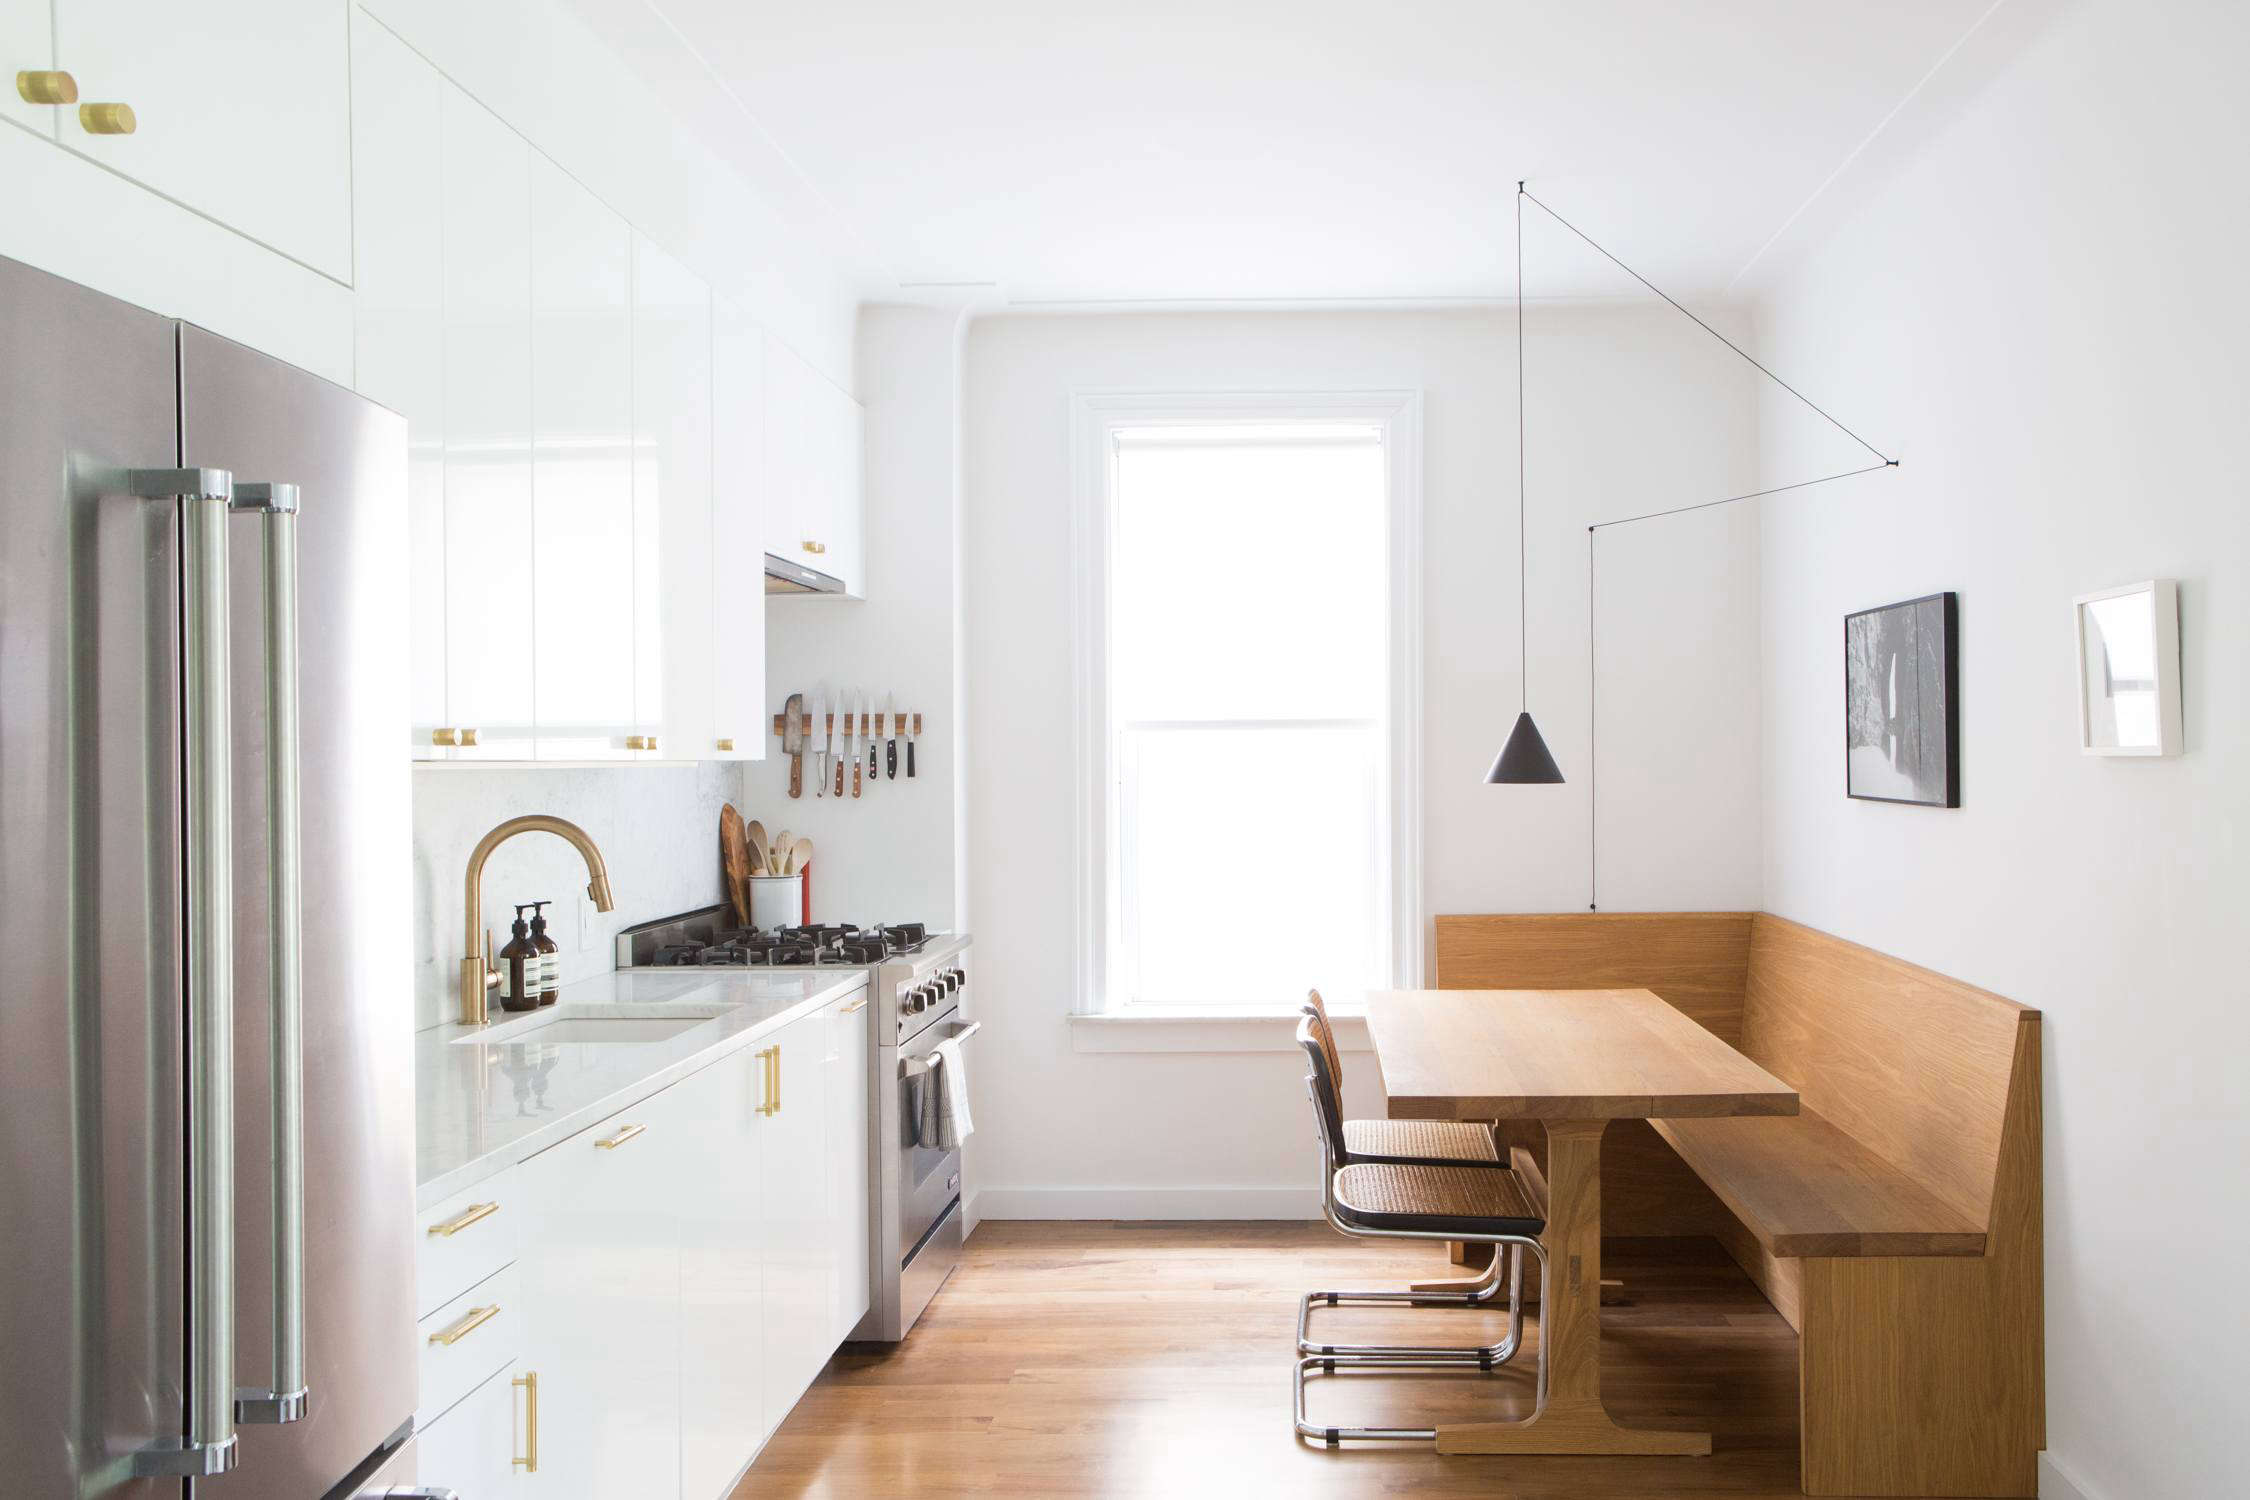 An L-shaped booth in oil-finished white oak by designers Space Exploration from Kitchen of the Week: An Ikea Kitchen with an Elegant Upper Cabinet Solution.